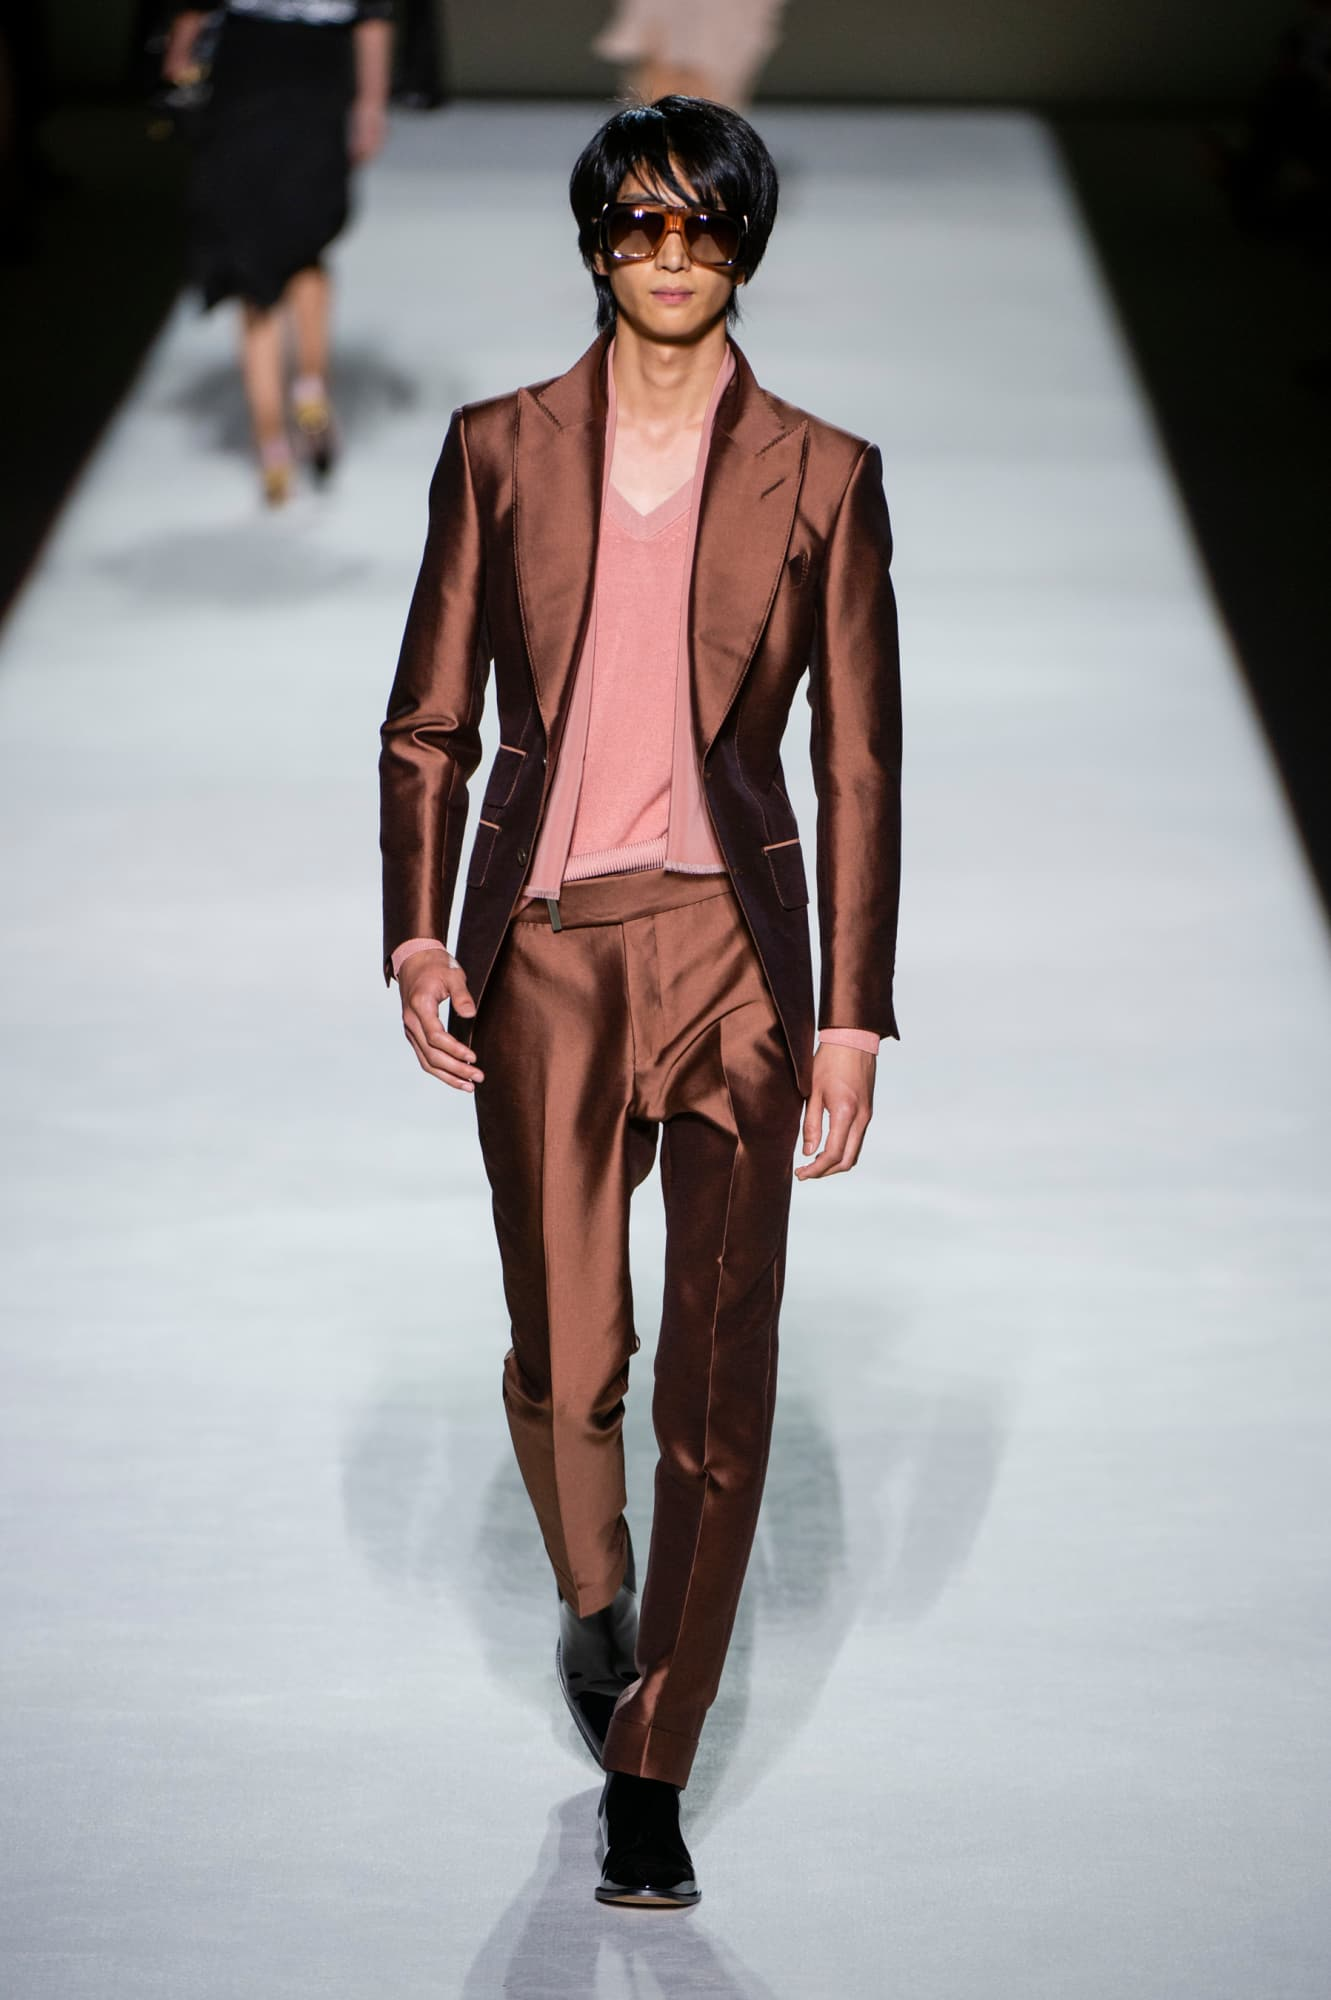 Tom Ford spring 2019 collection, men's copper metallic suit